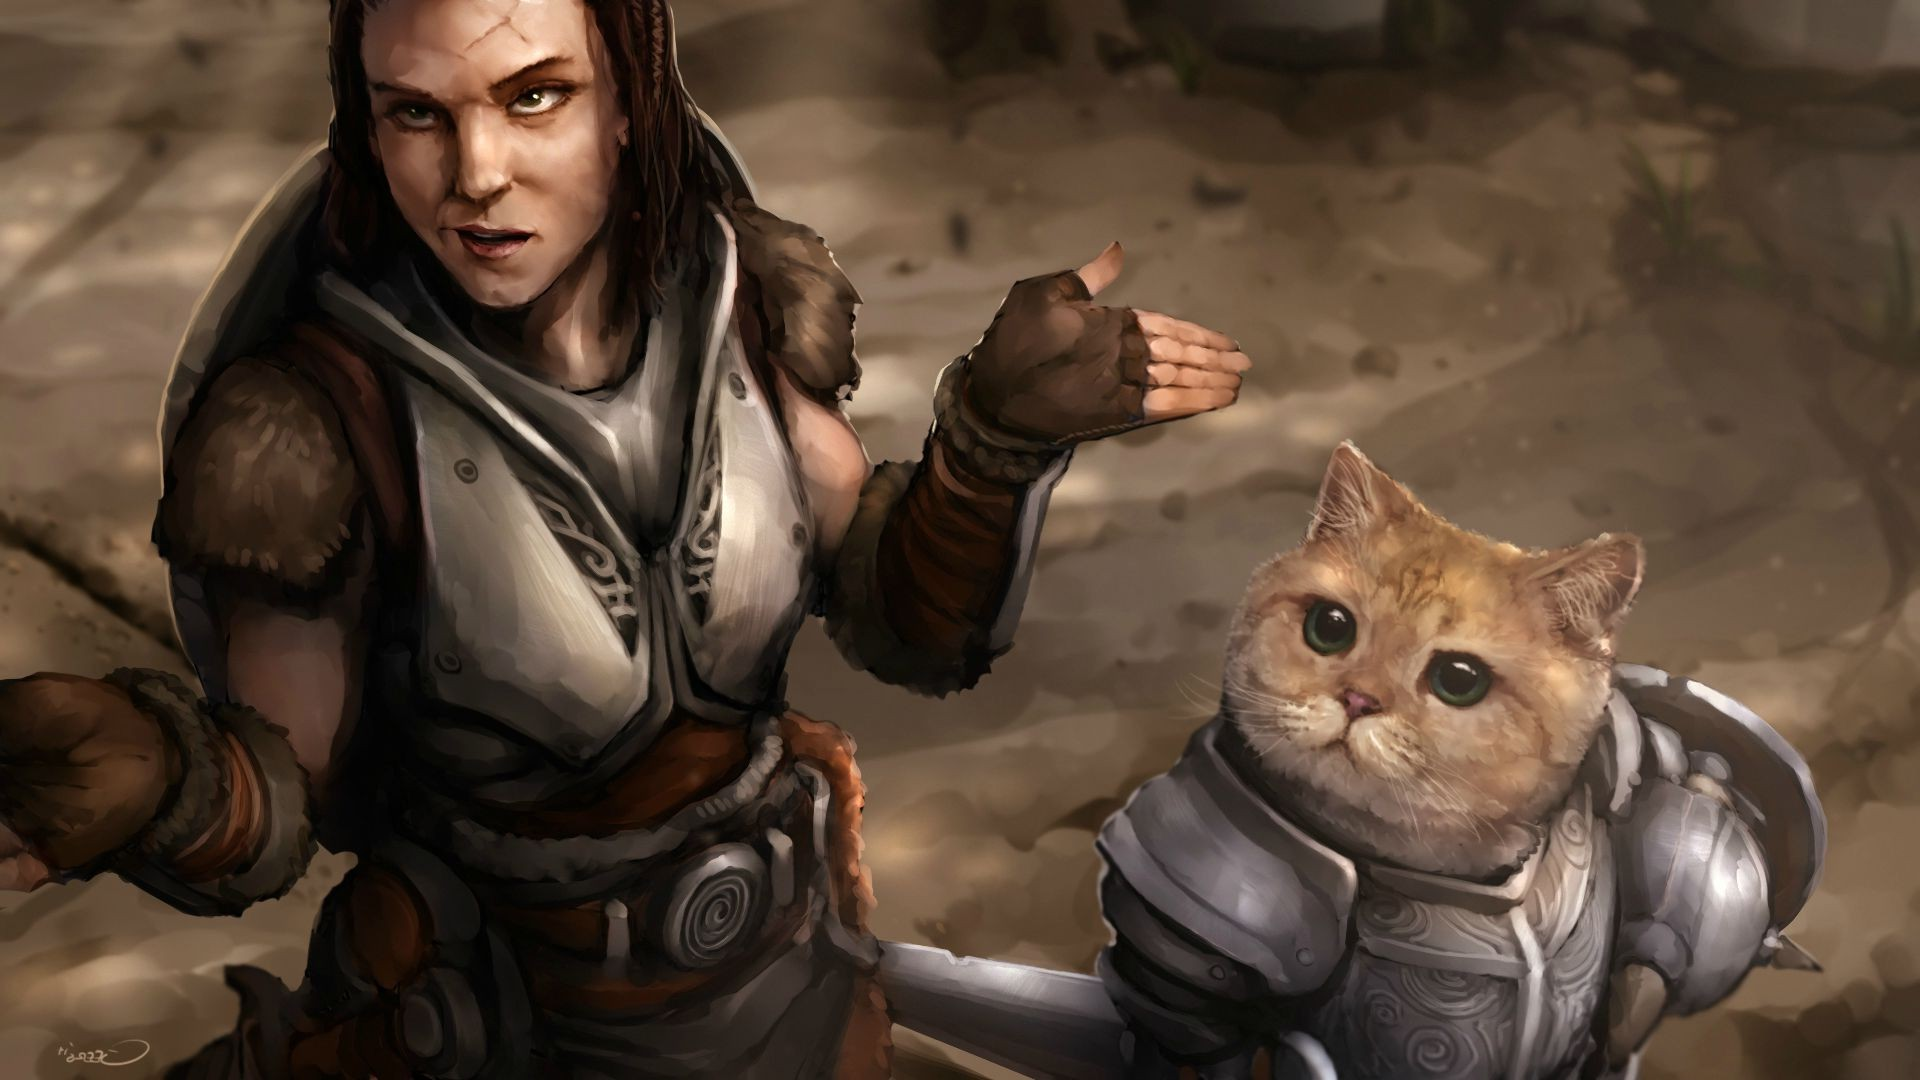 Res: 1920x1080, The Elder Scrolls V: Skyrim, Cat, Video Games, Lydia